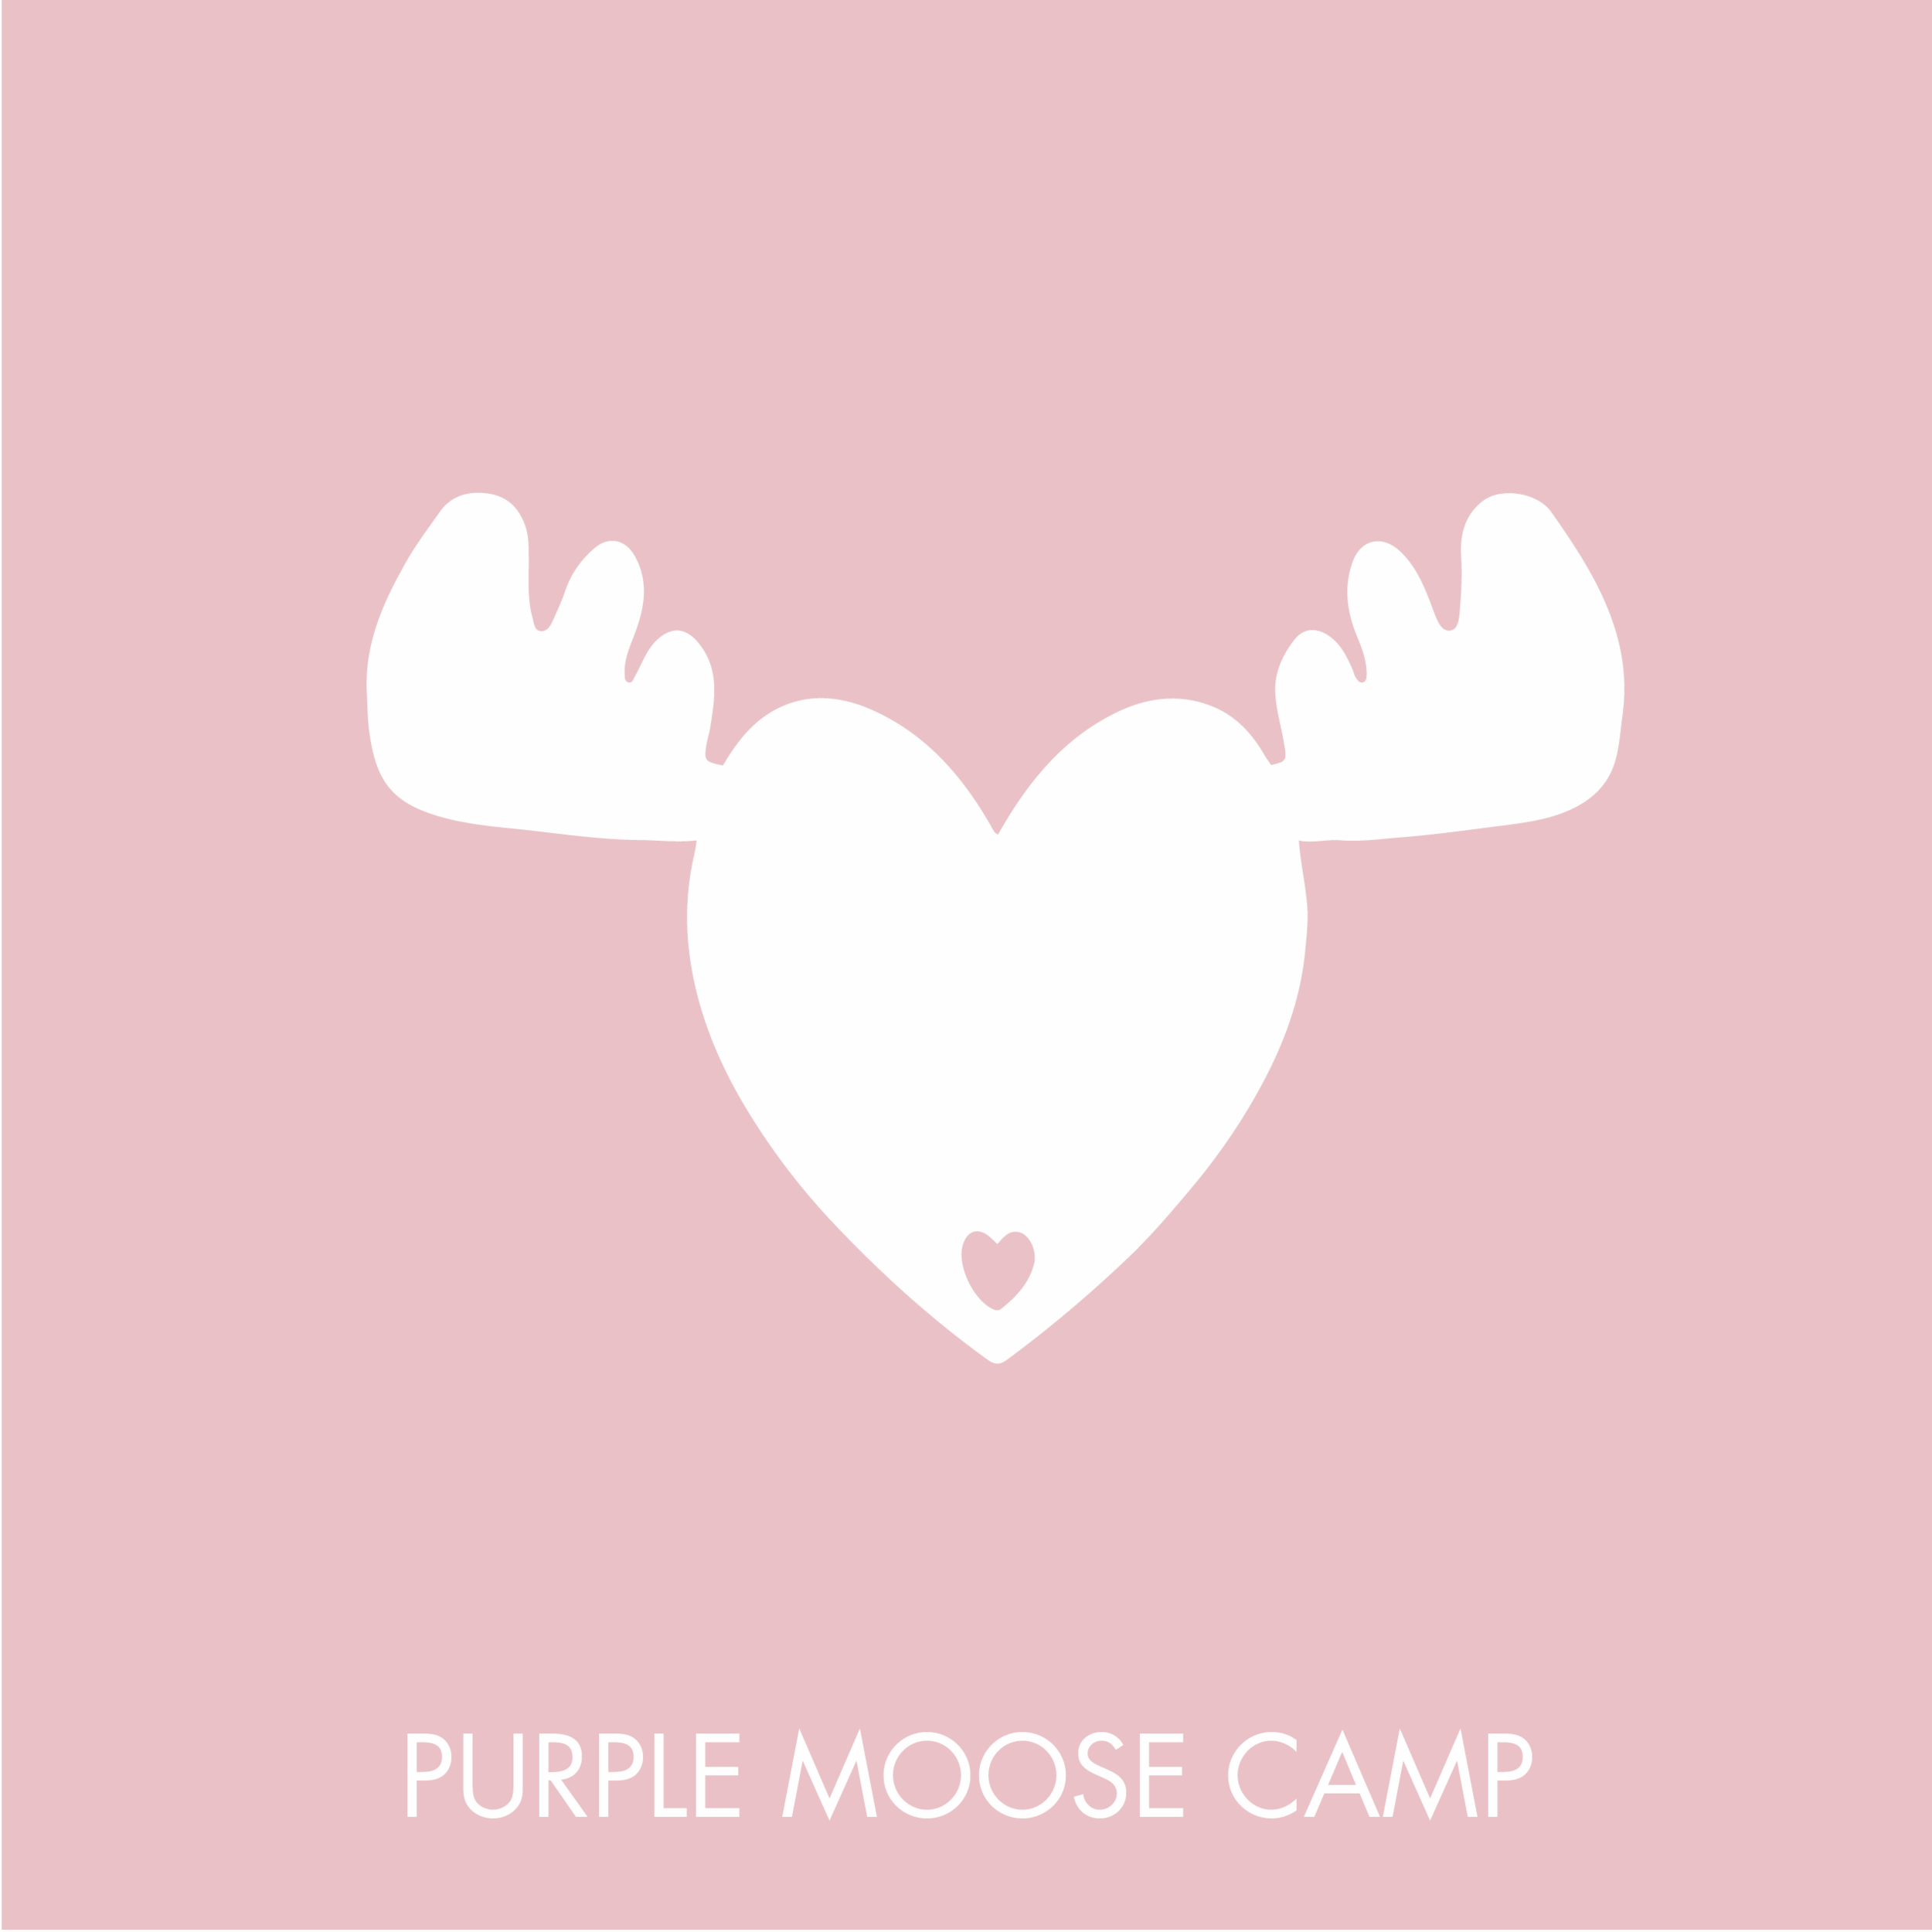 PURPLE MOOSE CAMP